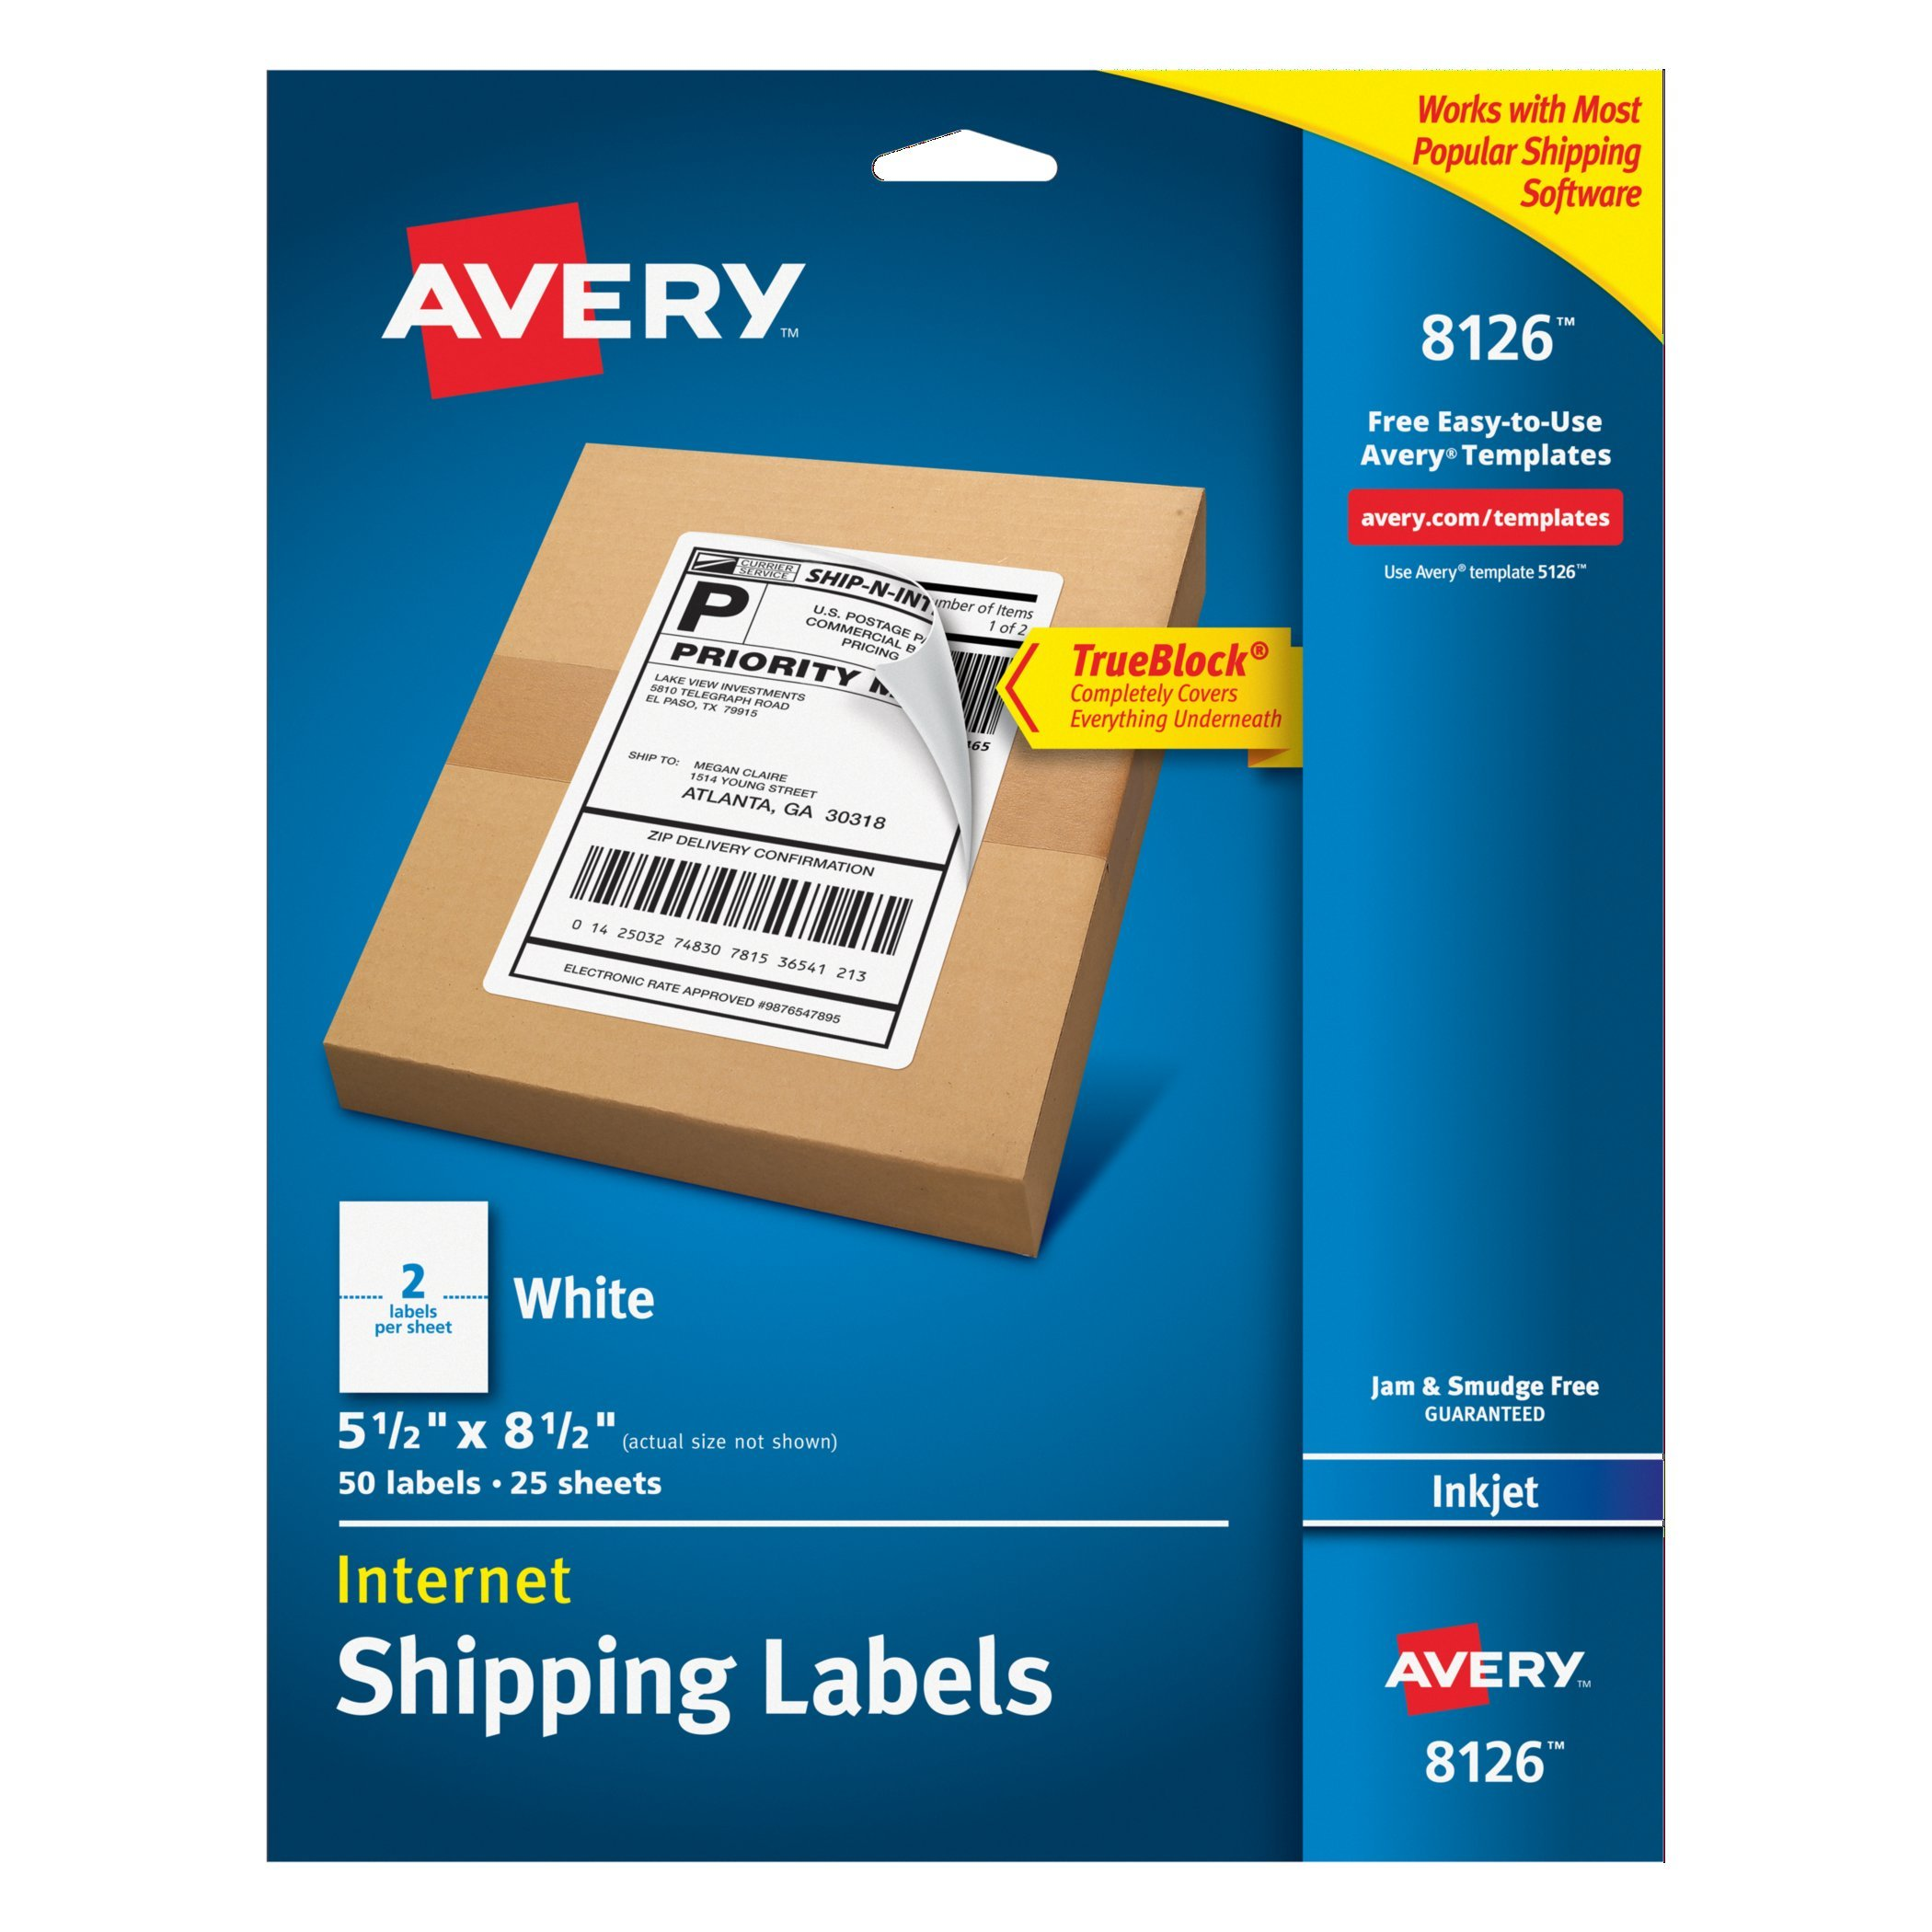 avery templates and software - permanent white shipping labels designed for easy use